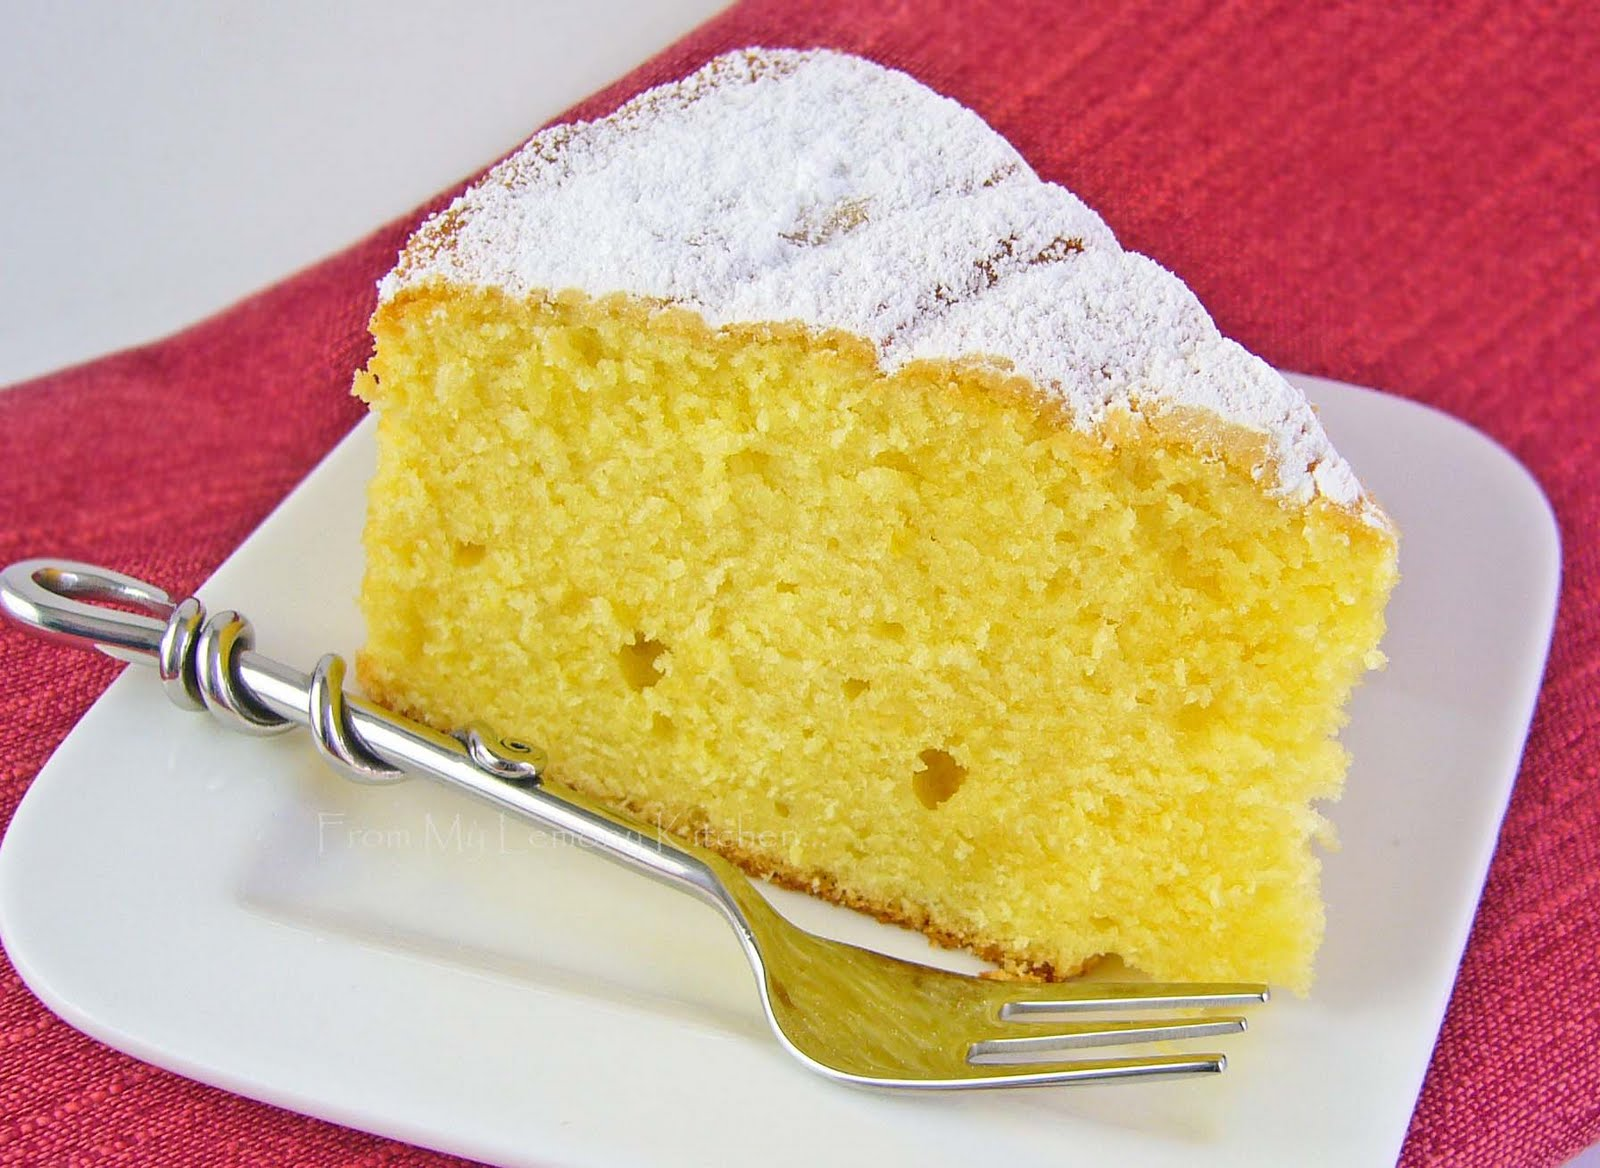 Lemon and sour cream cake - Lisa's Lemony Kitchen